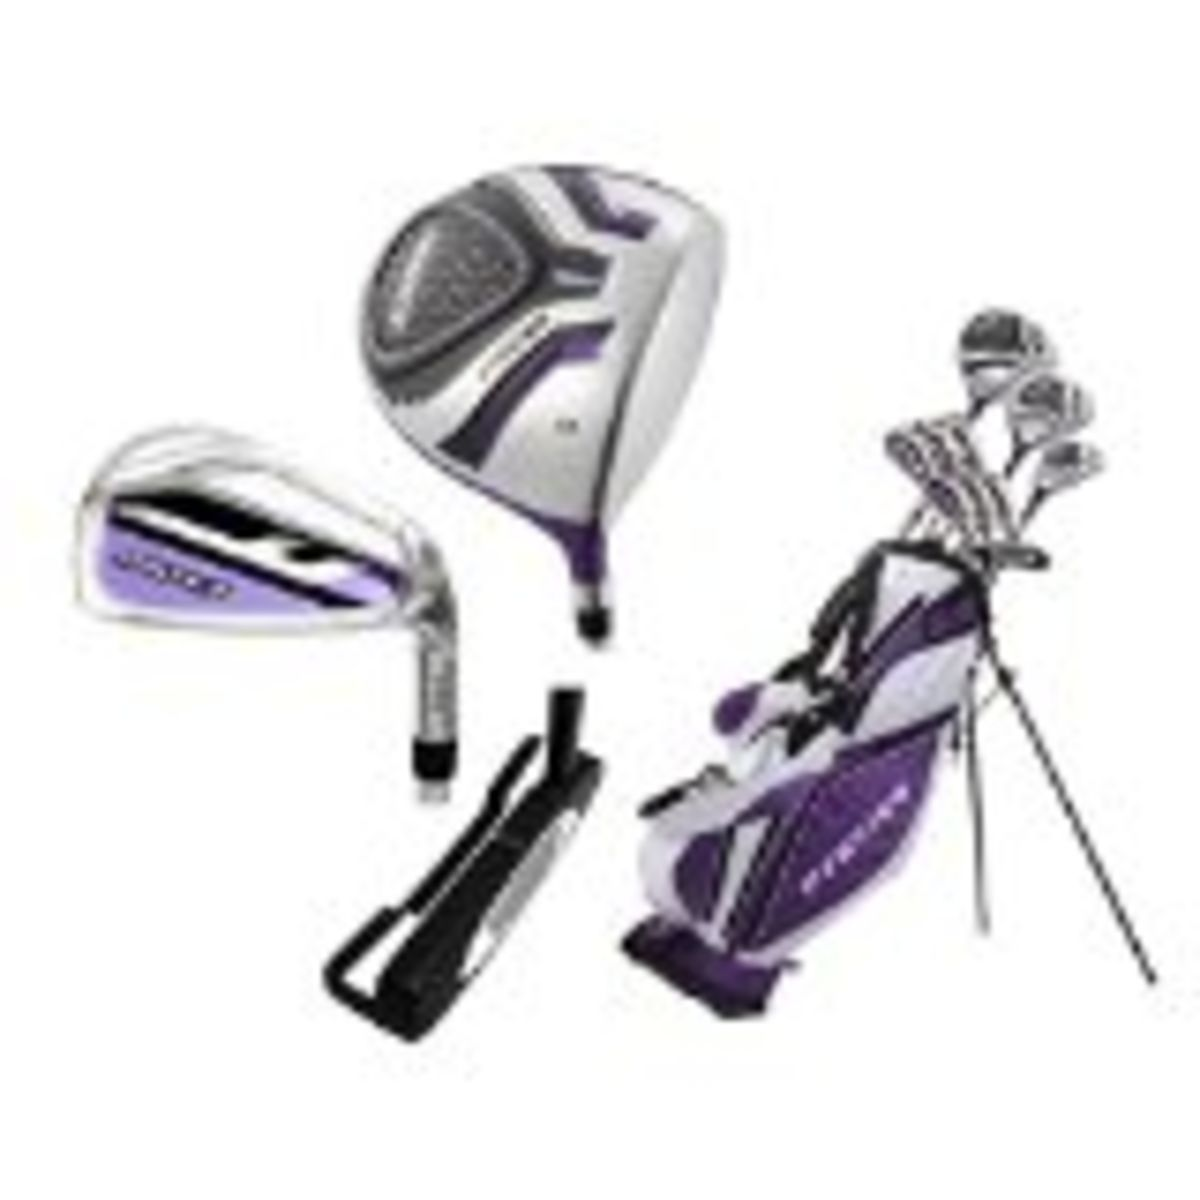 Headline for Best-Rated Ladies Left Handed Golf Club Complete Sets On Sale - Reviews And Ratings